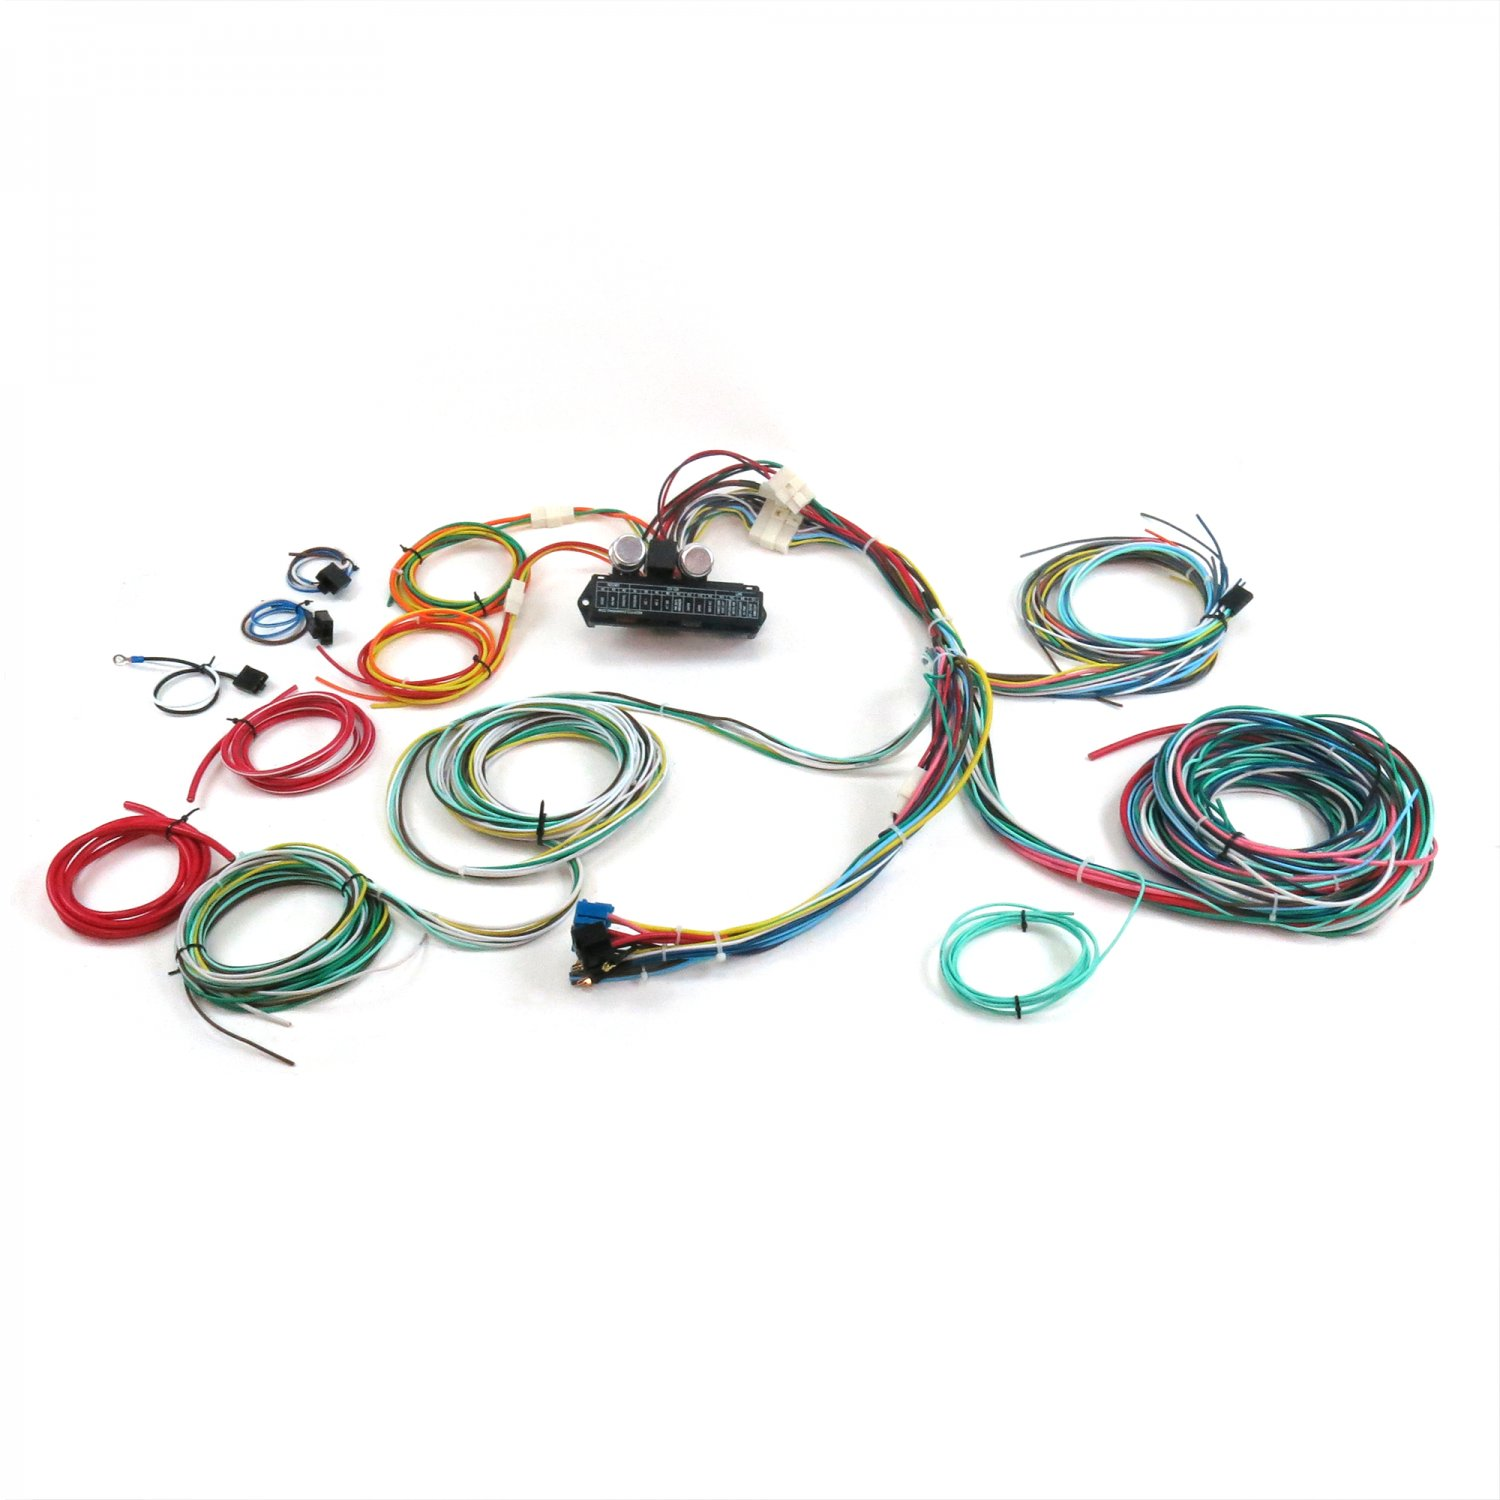 1973 1982 Chevy Gmc Pickup Truck Wire Harness Universal Wiring Kit 21 Circuit